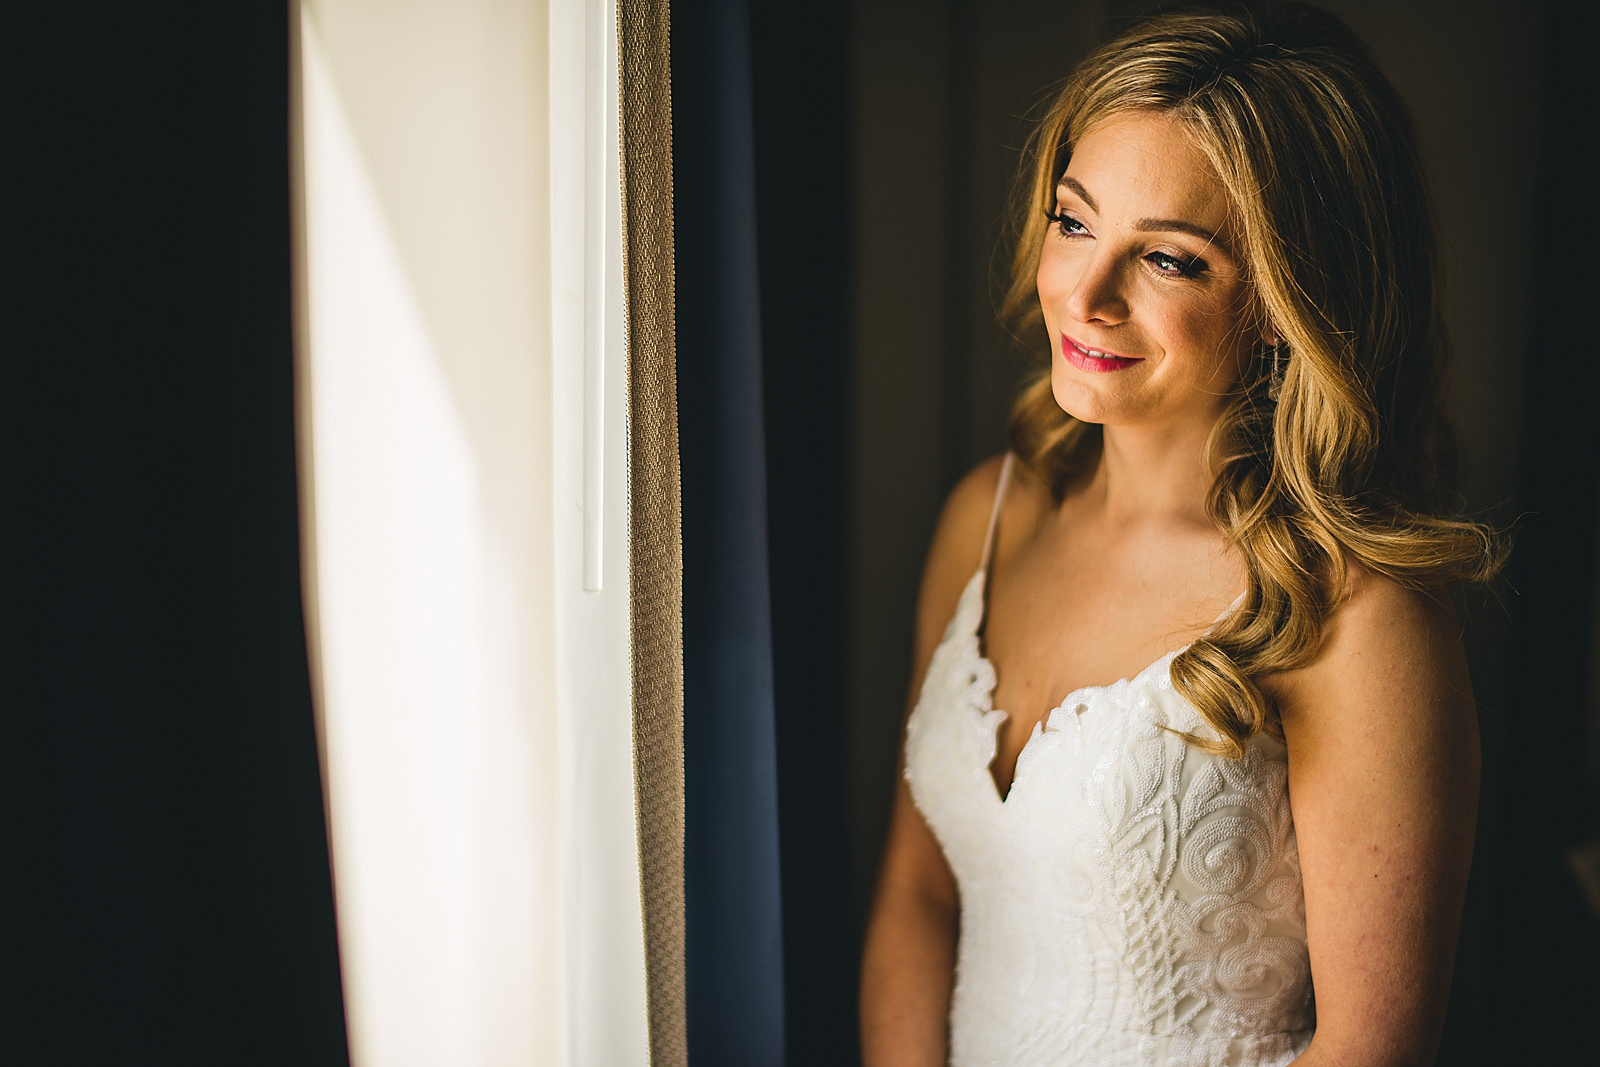 13 bride portrait in window - Susie + Eric's Jewish Wedding at the Peninsula Hotel in Chicago